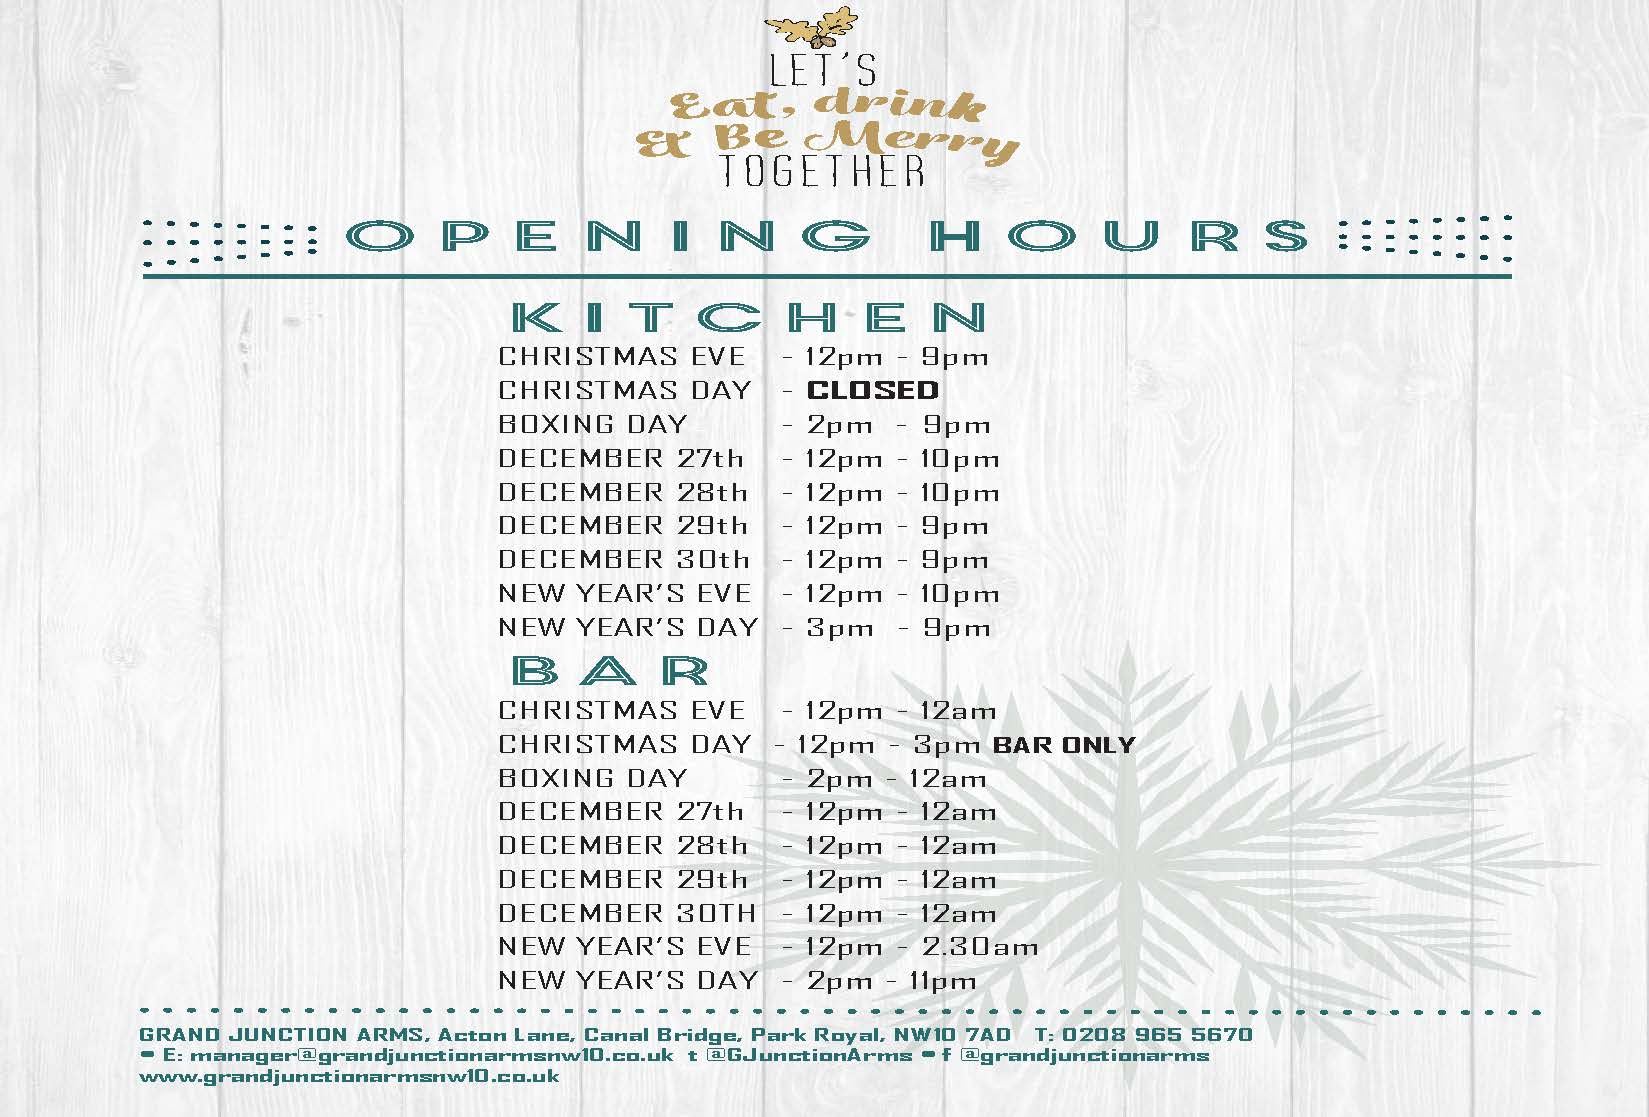 A4 double sided A4CHRISTMASOPENINGHOURS0